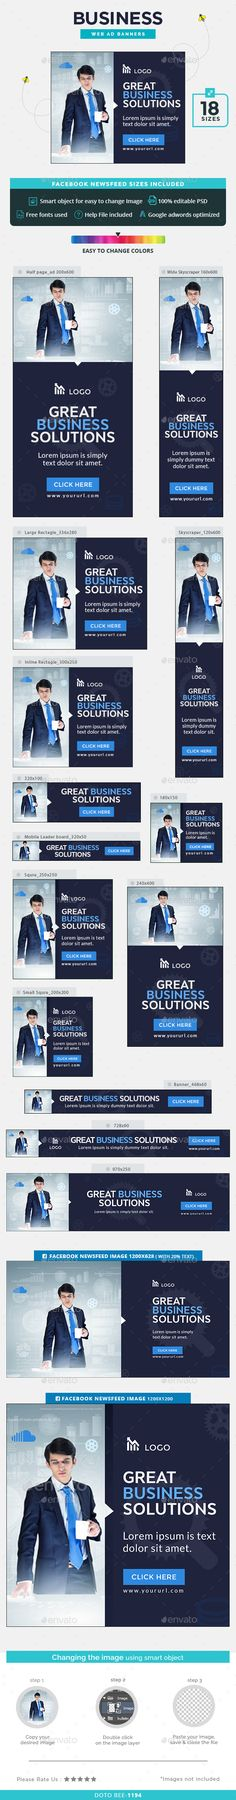 Business Web Banners Template PSD. Download here: http://graphicriver.net/item/business-banners/15395350?ref=ksioks